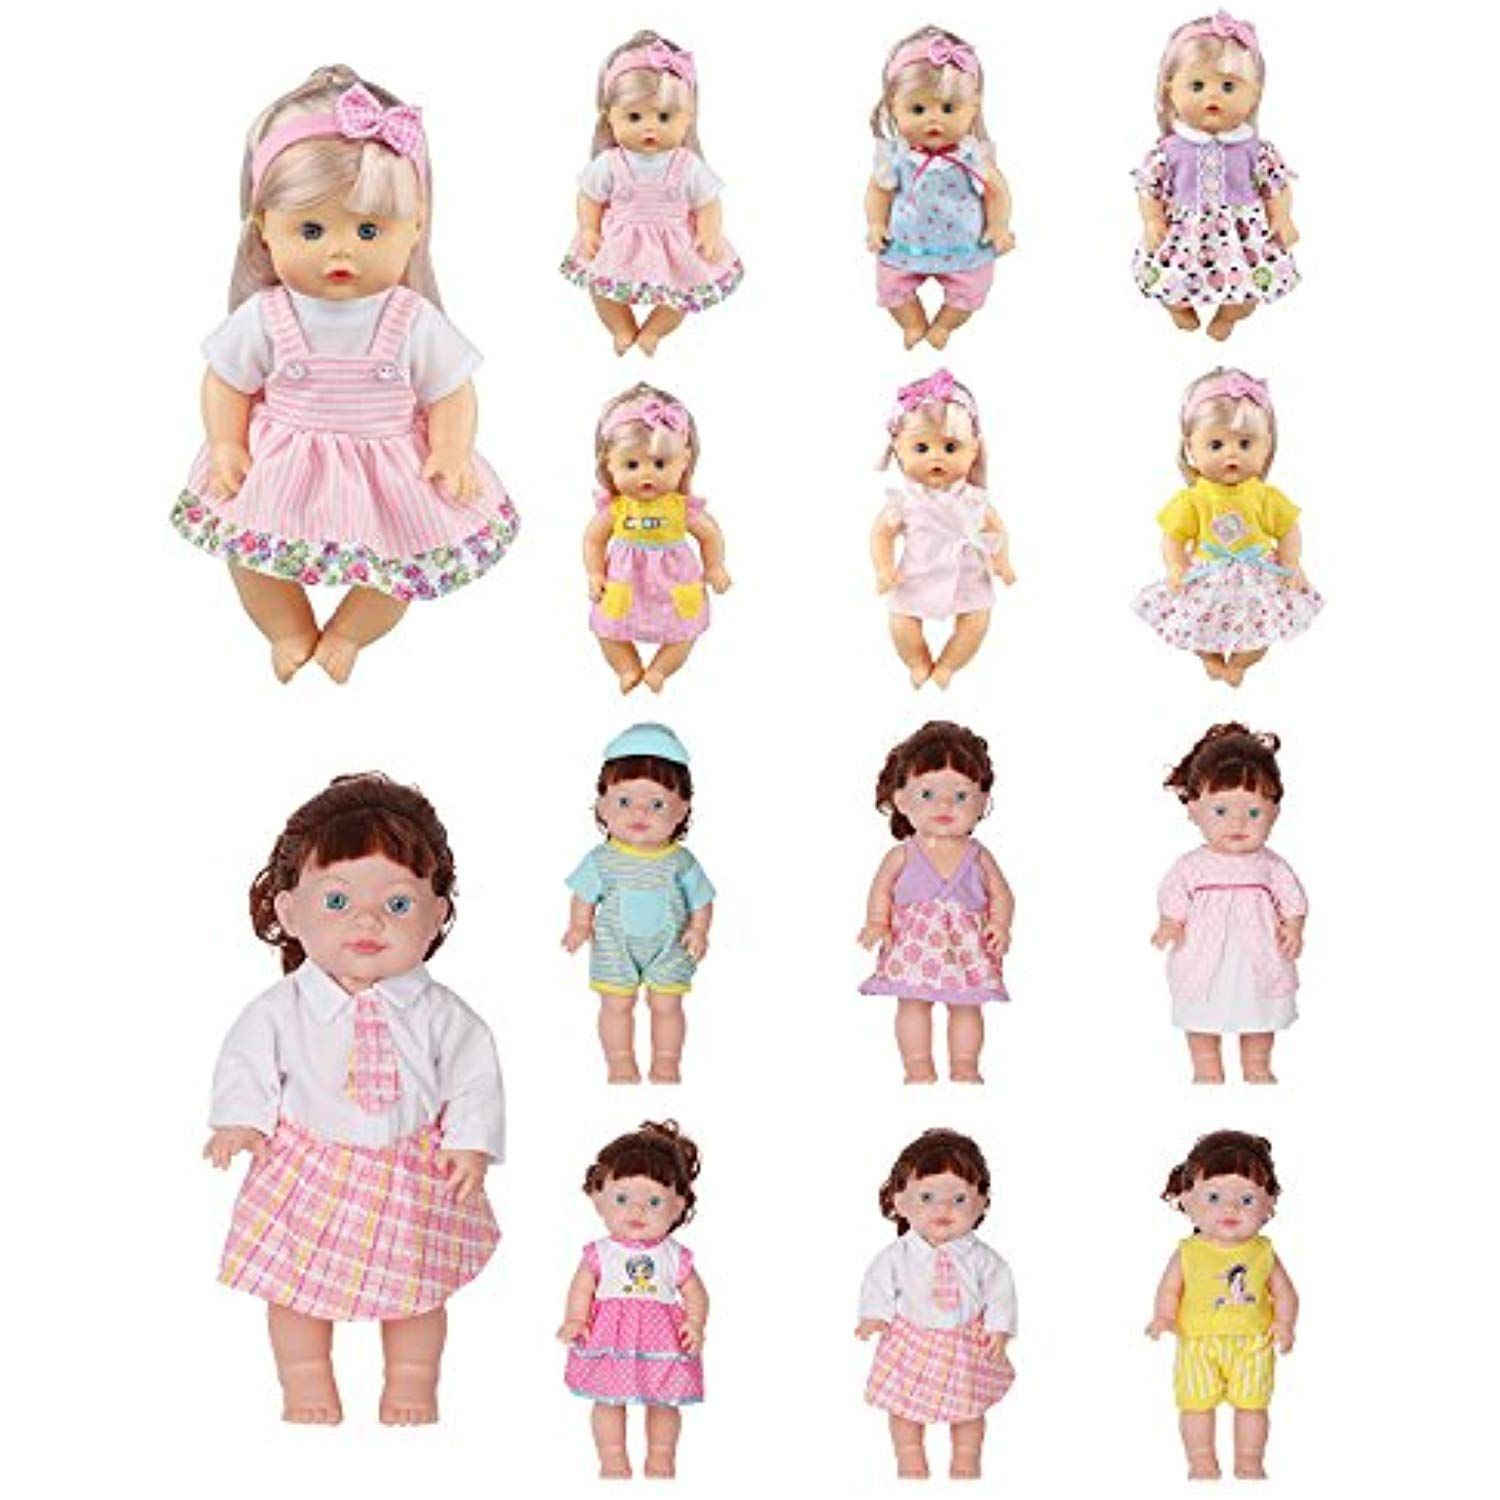 Huang Cheng Toys 12 13 14 15 16 Inch Set Of 12 Handmade Alive Lovely Baby Doll Clothes Dress Outfits Costumes Dolly P Baby Doll Cradle Doll Carrier Doll Cradle